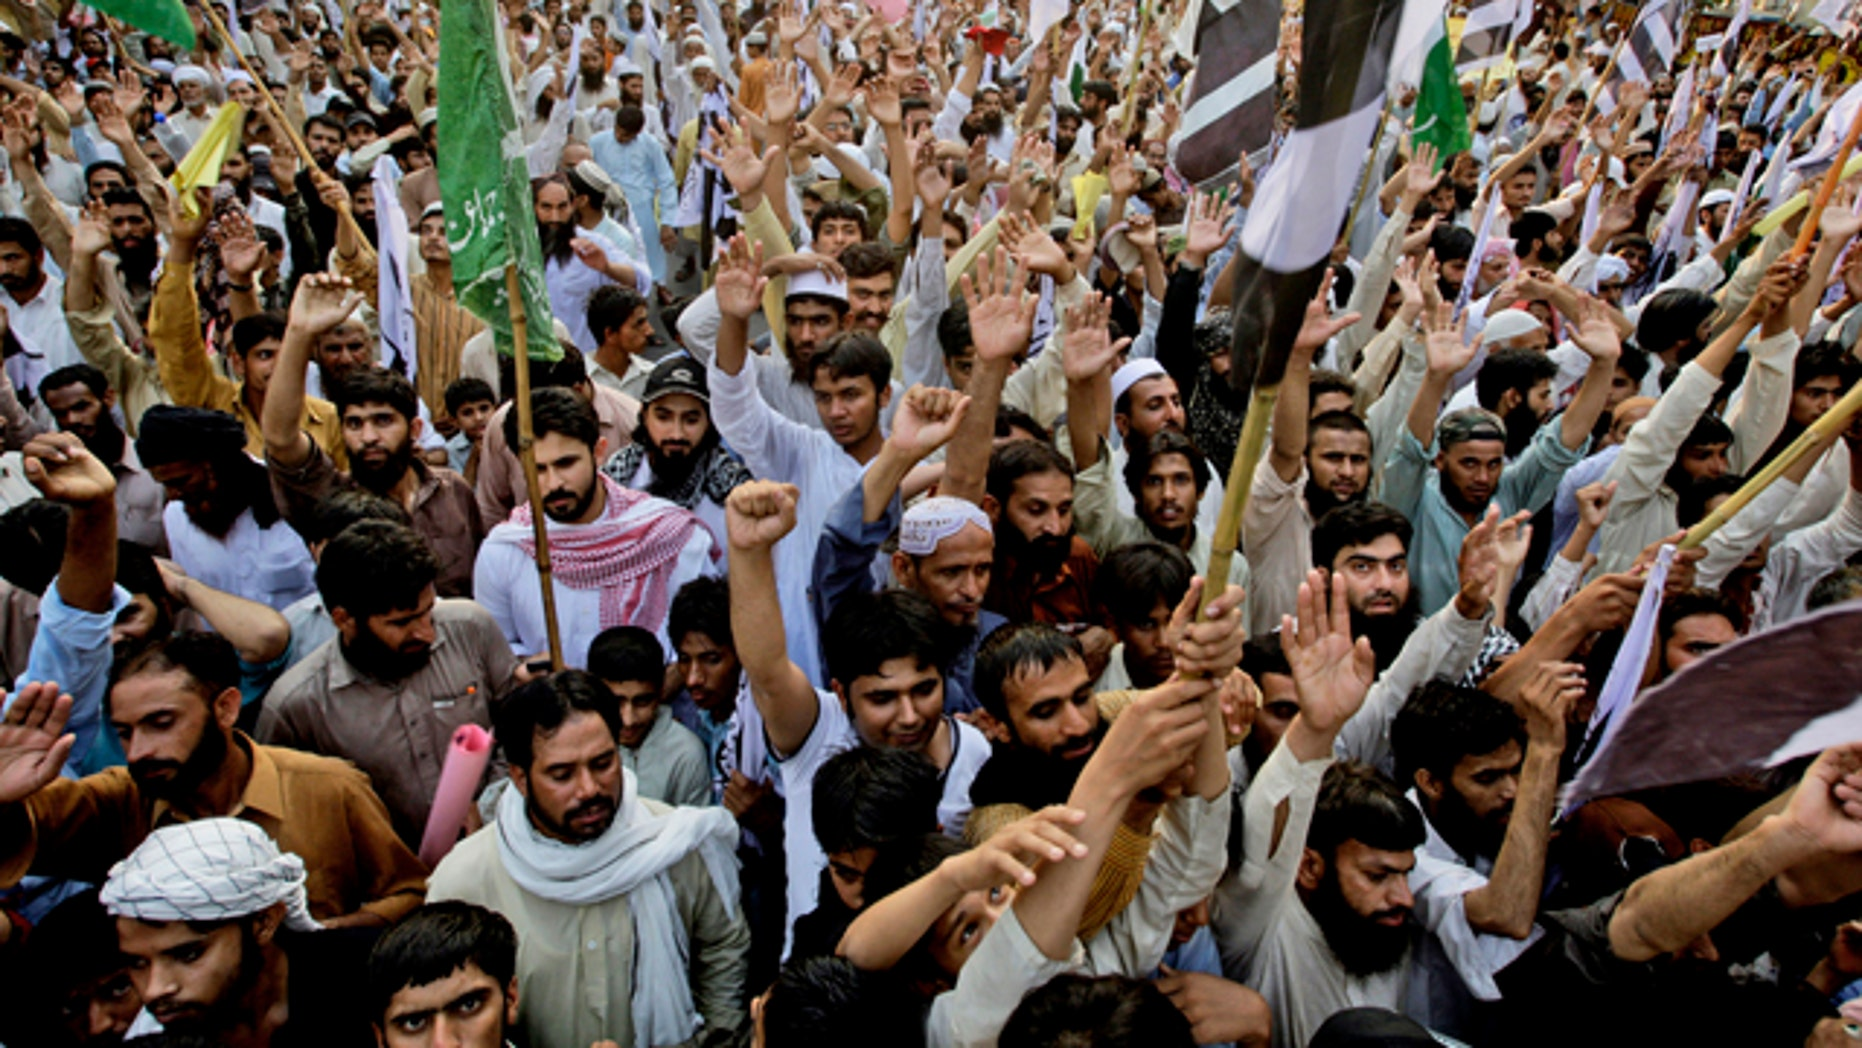 Supporters of Pakistani religious group Jamaat-ud-Dawa, rally to condemn the United States for the killing of Al Qaeda leader Usama bin Laden, in Lahore, Pakistan.